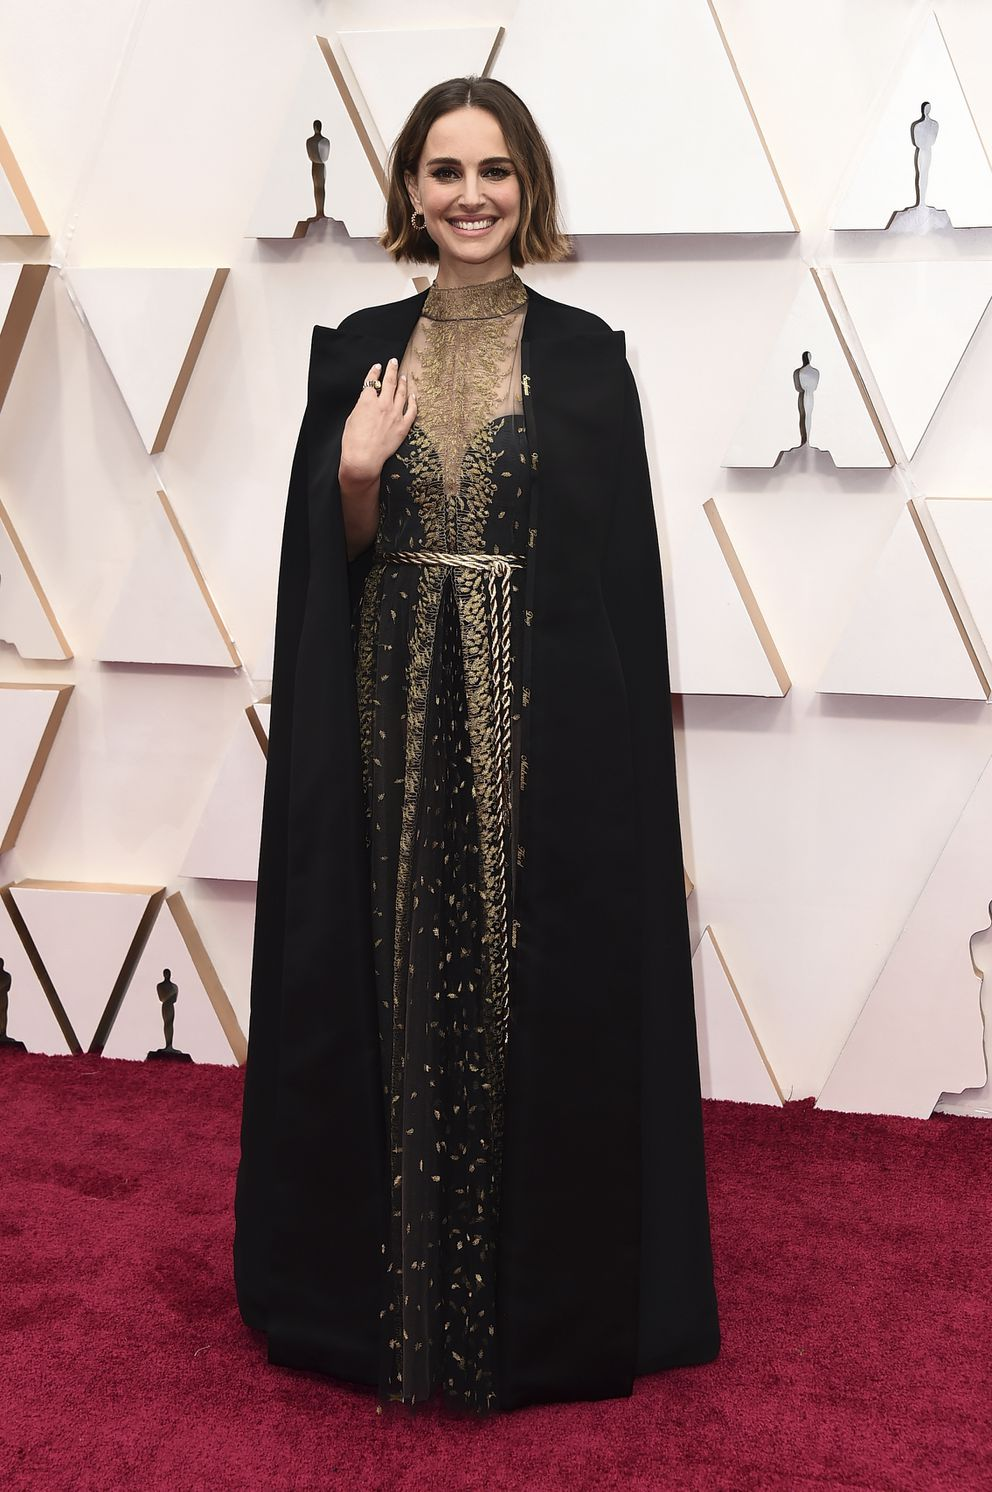 Natalie Portman arrives at the Oscars on Sunday, Feb. 9, 2020, at the Dolby Theatre in Los Angeles. (Photo by Jordan Strauss/Invision/AP)